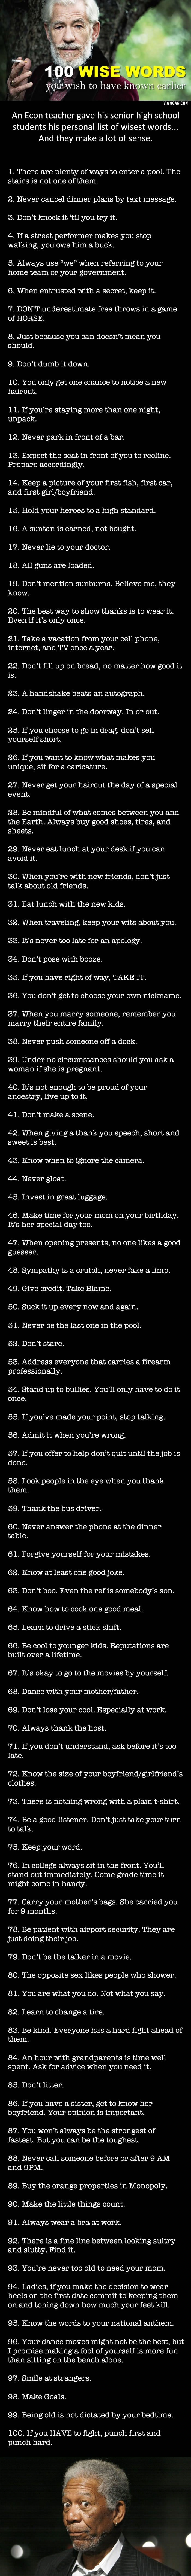 100 Points of Wisdom